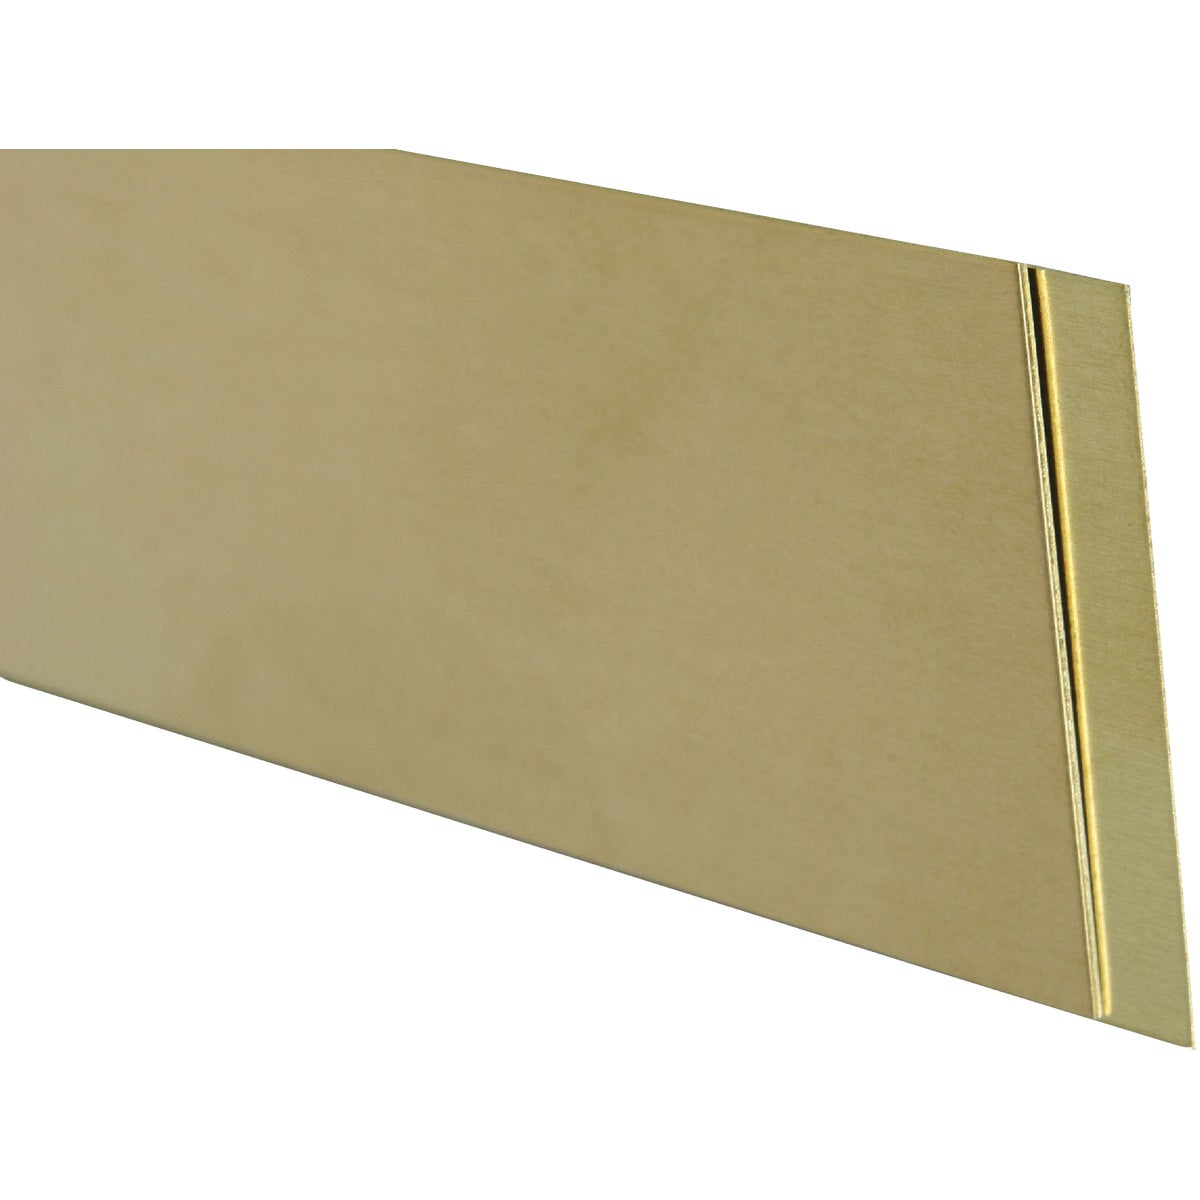 .064X2X12 BRASS STRIP - 8249 by K&s Precision Metals